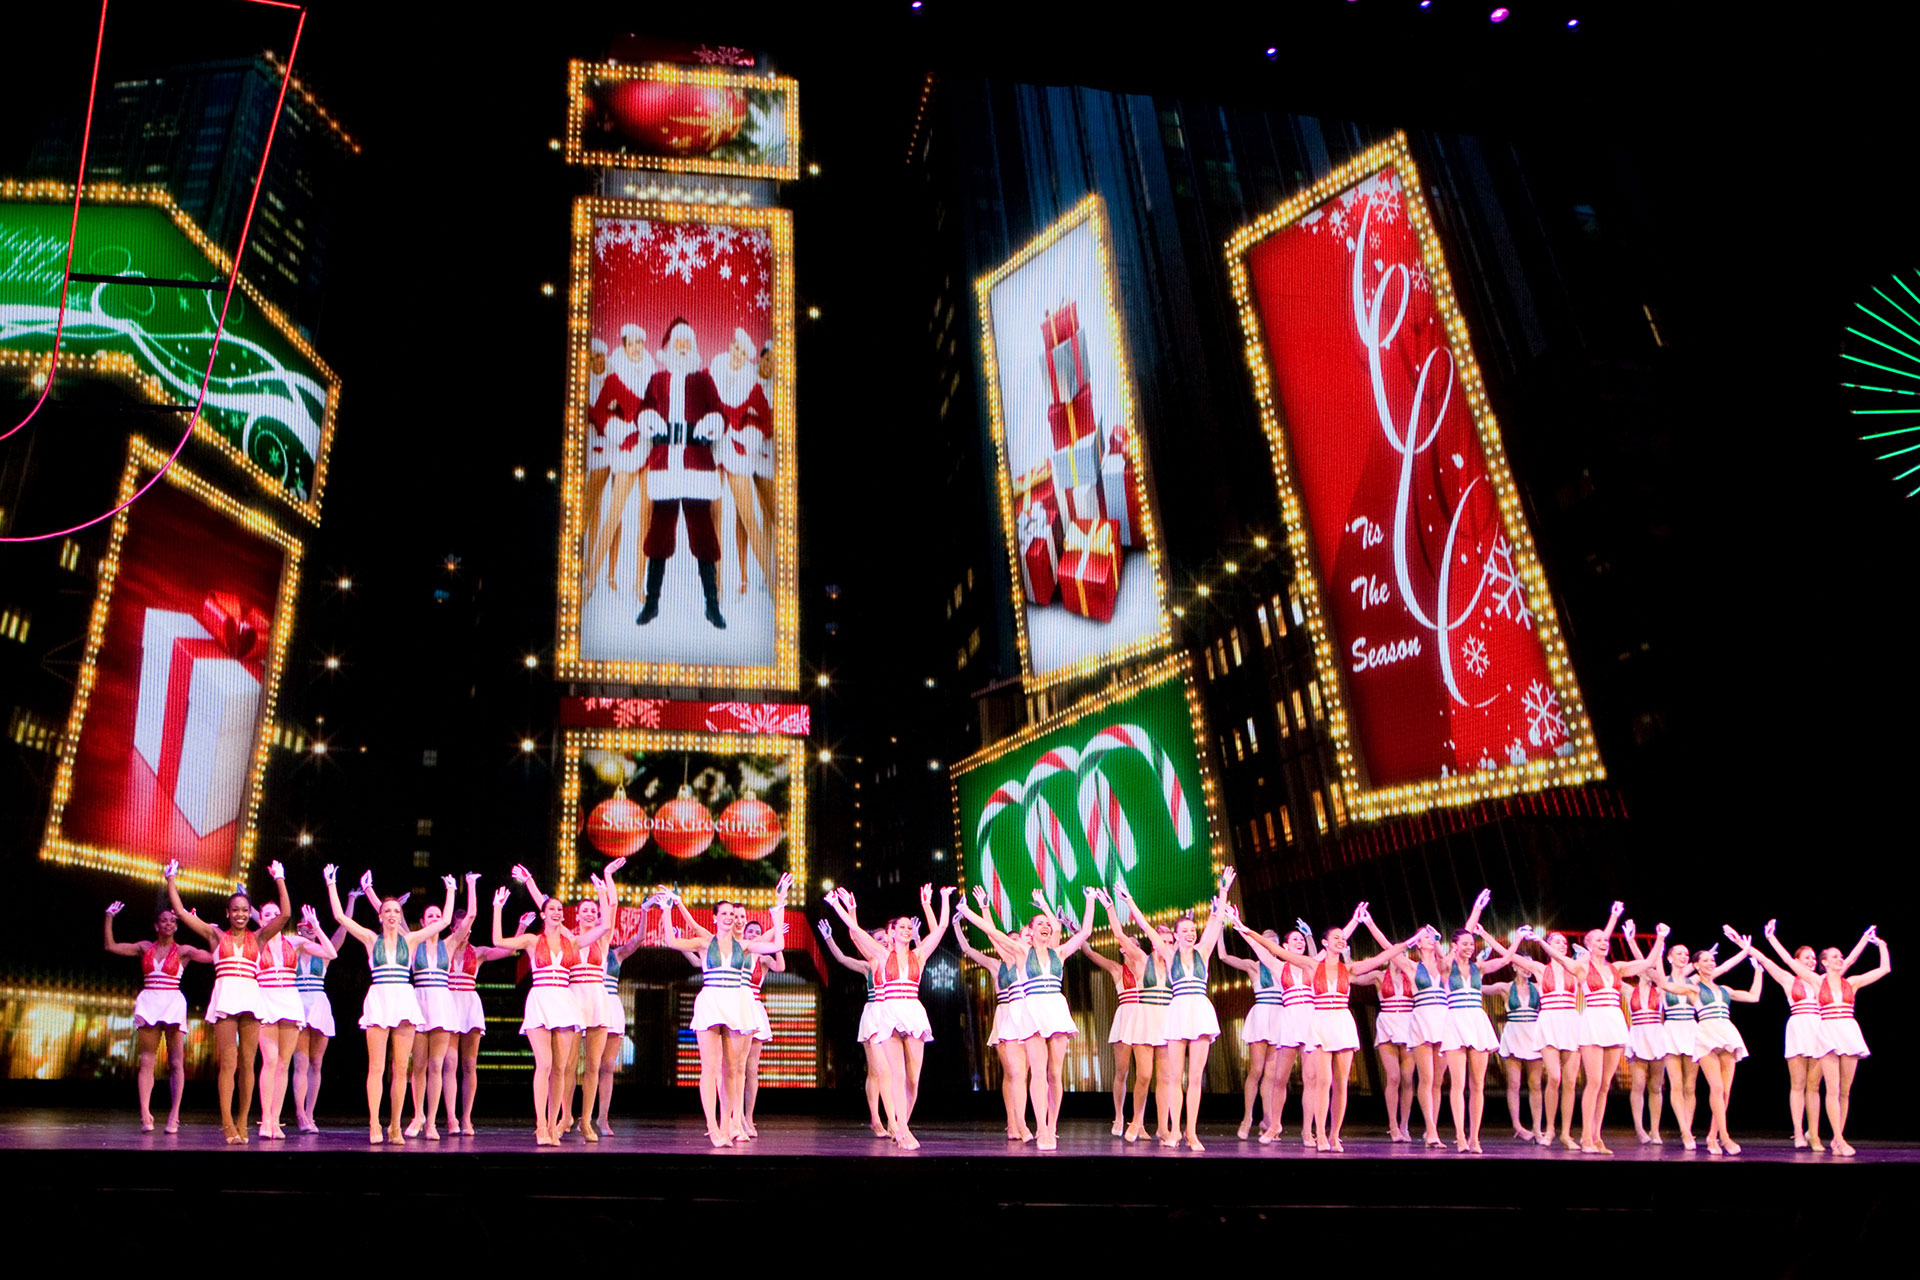 The Radio City Music Hall Christmas Spectacular